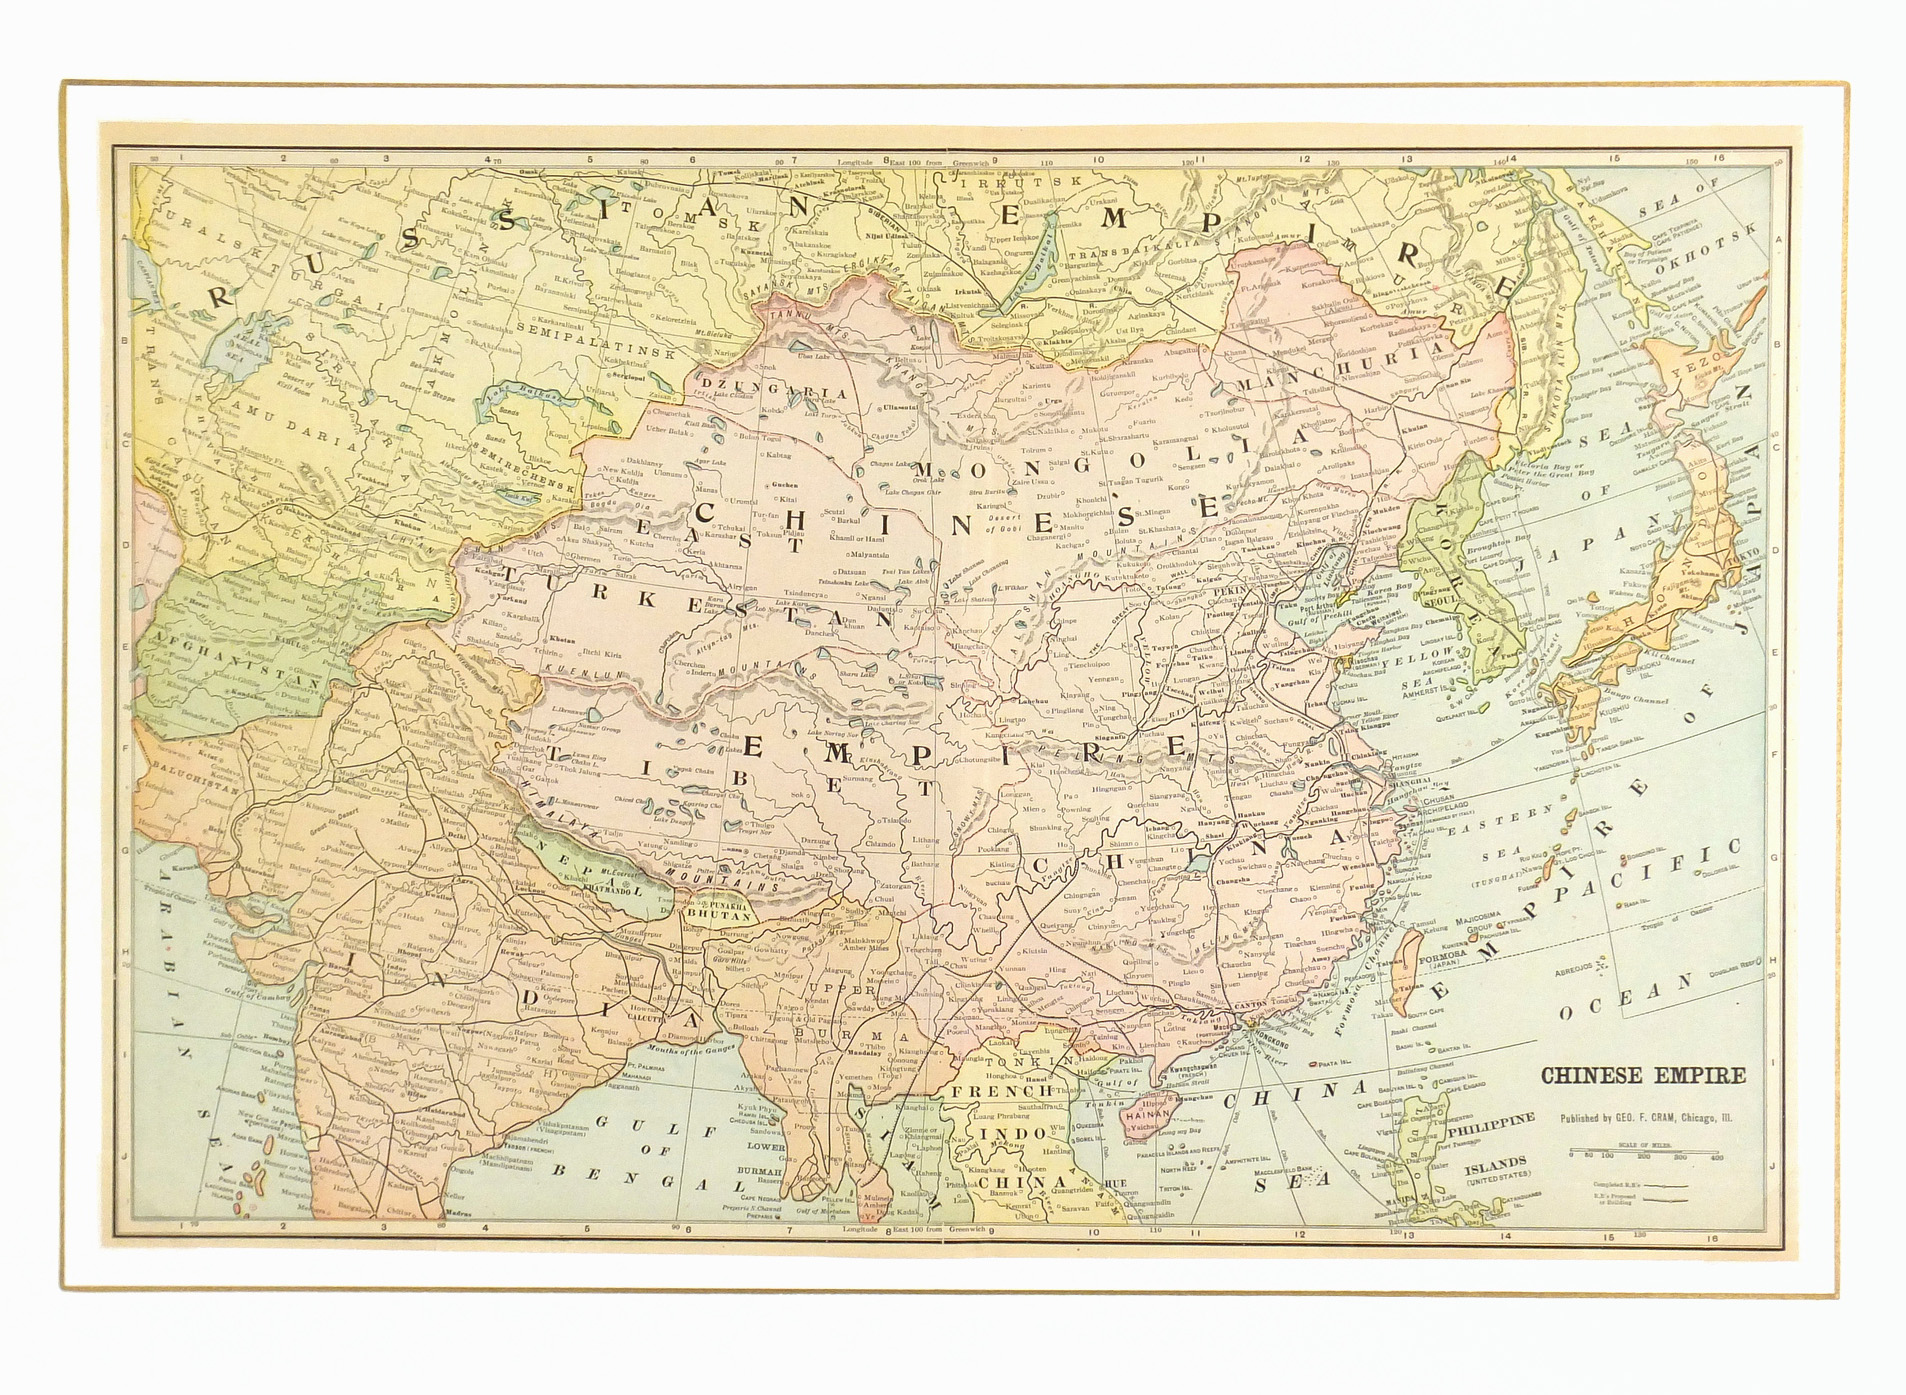 Chinese Empire, 1901-matted-7620K